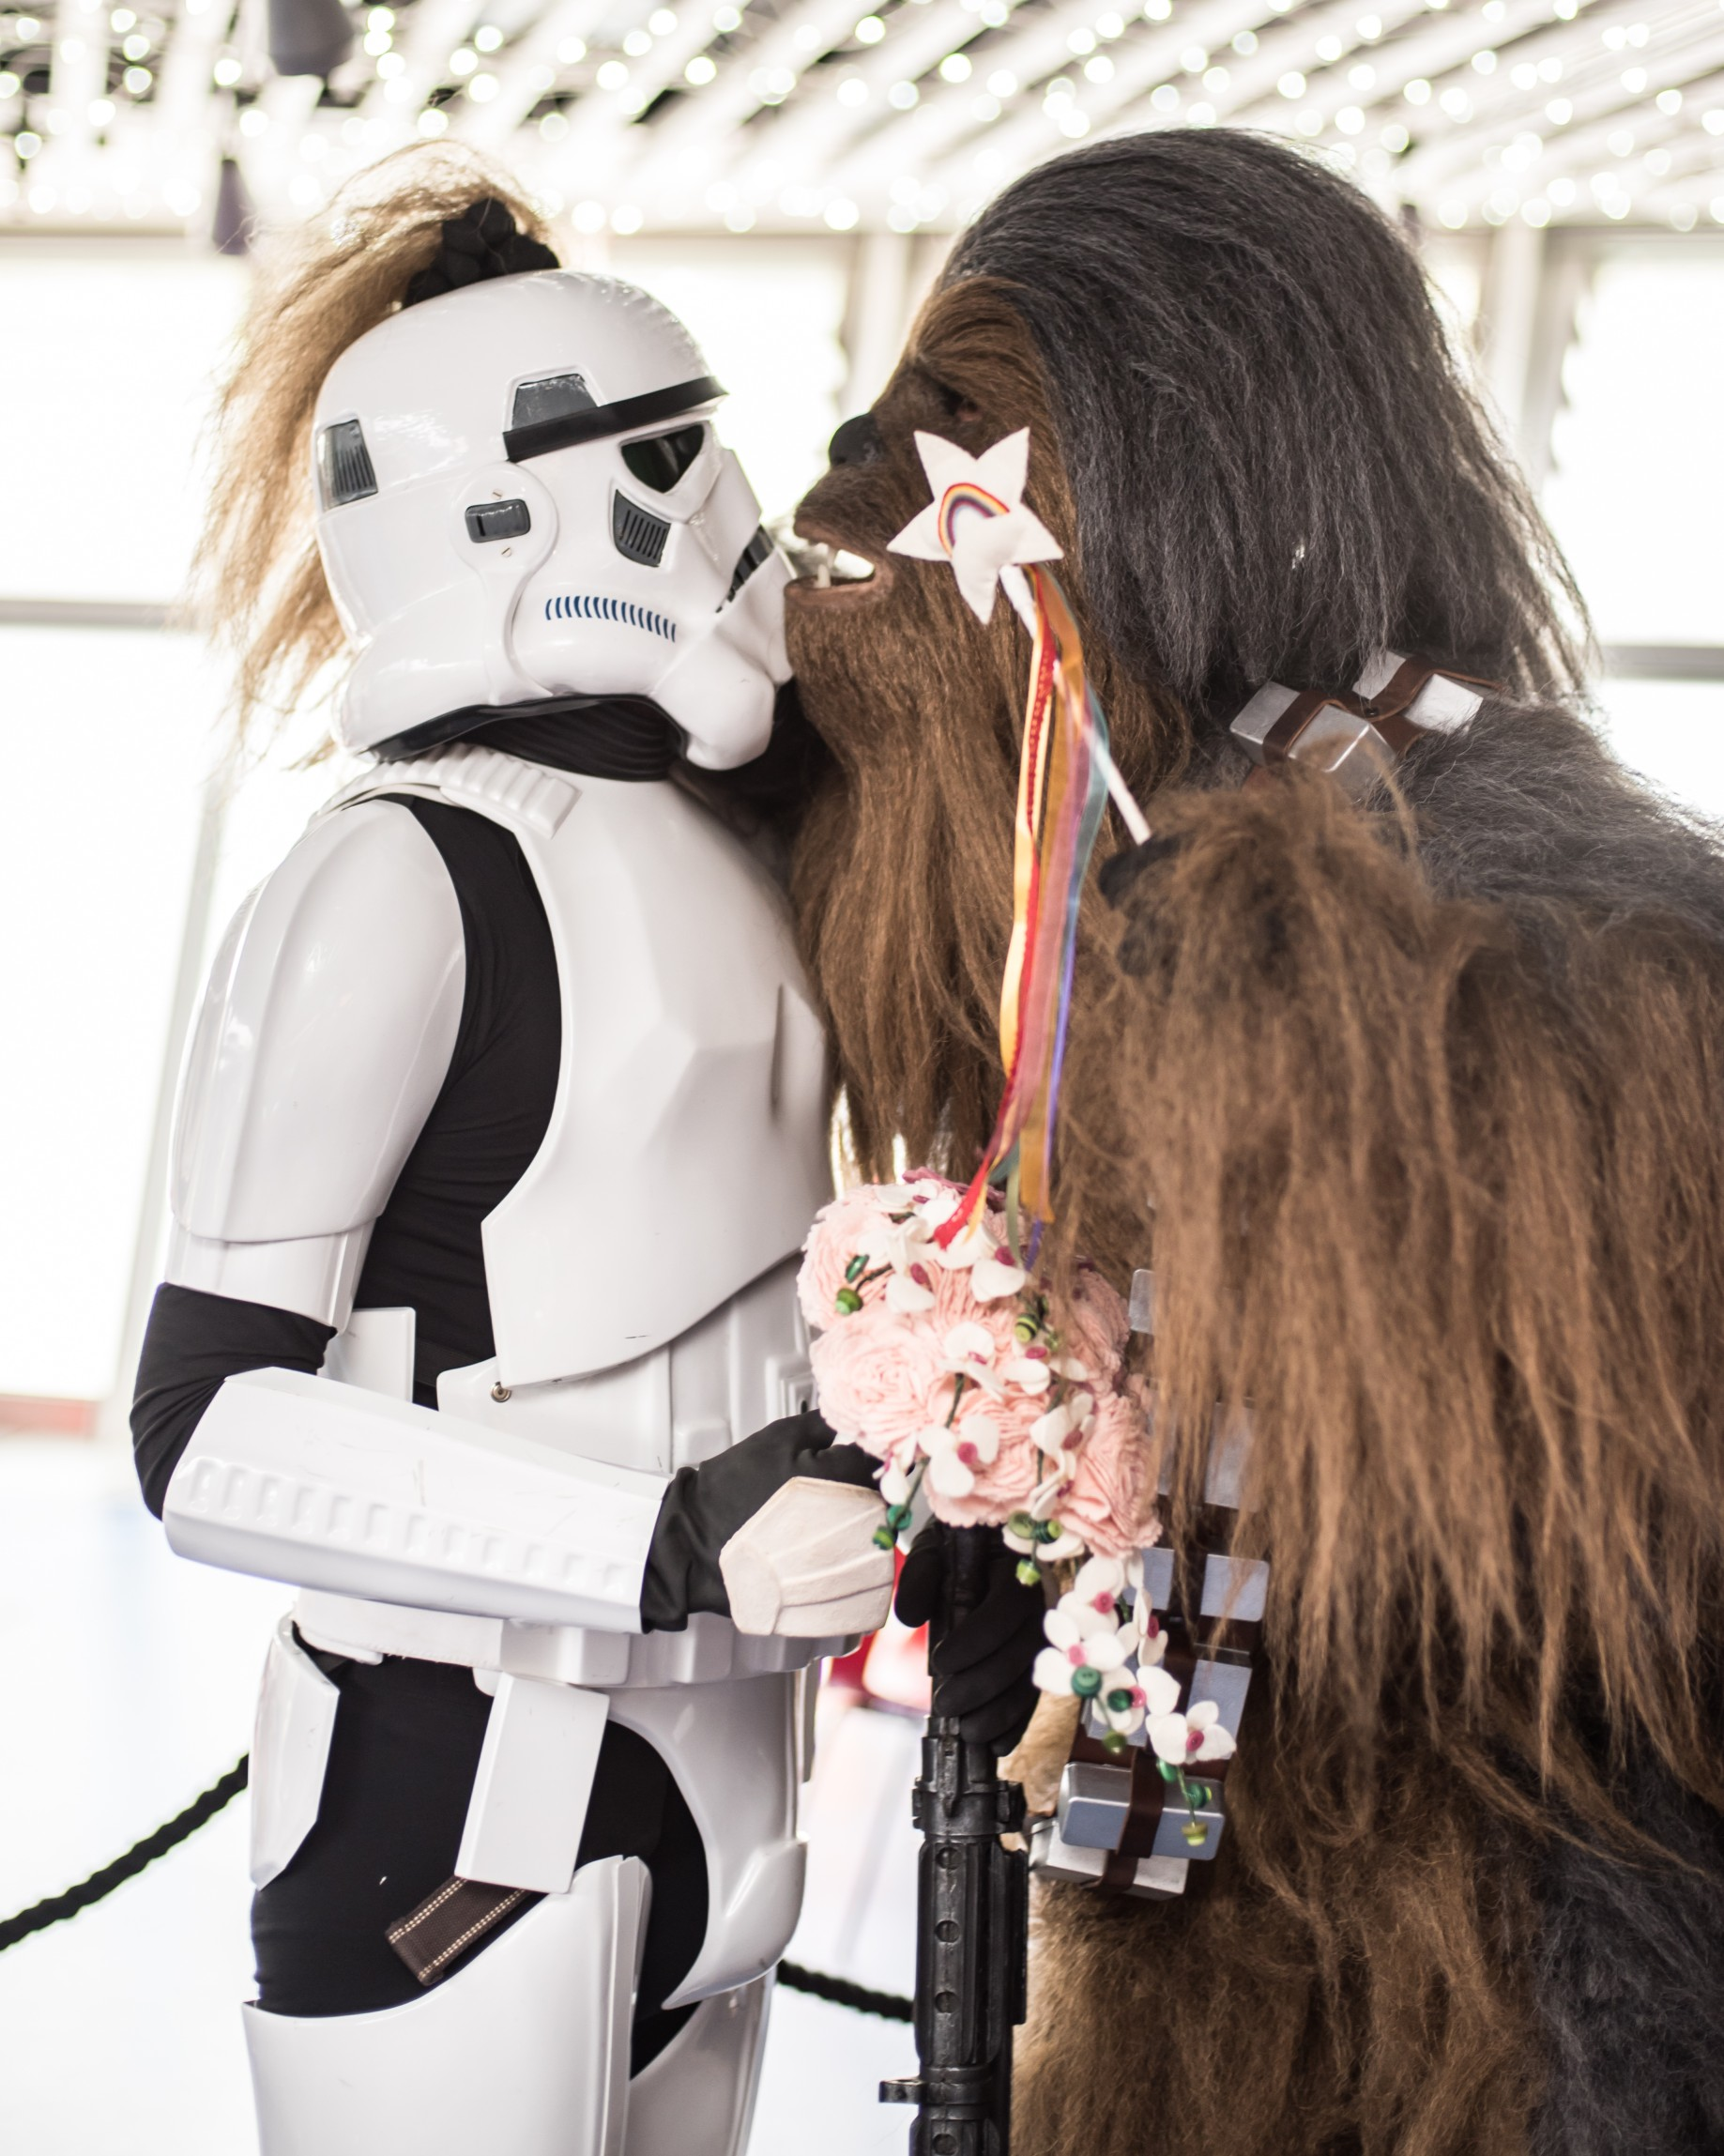 Star Wars wedding photo featuring Imperial army storm trooper holding bouquet and chewbacca holding fairy wand - by charlotte laurie designs with Imperial Icons - themed wedding ideas